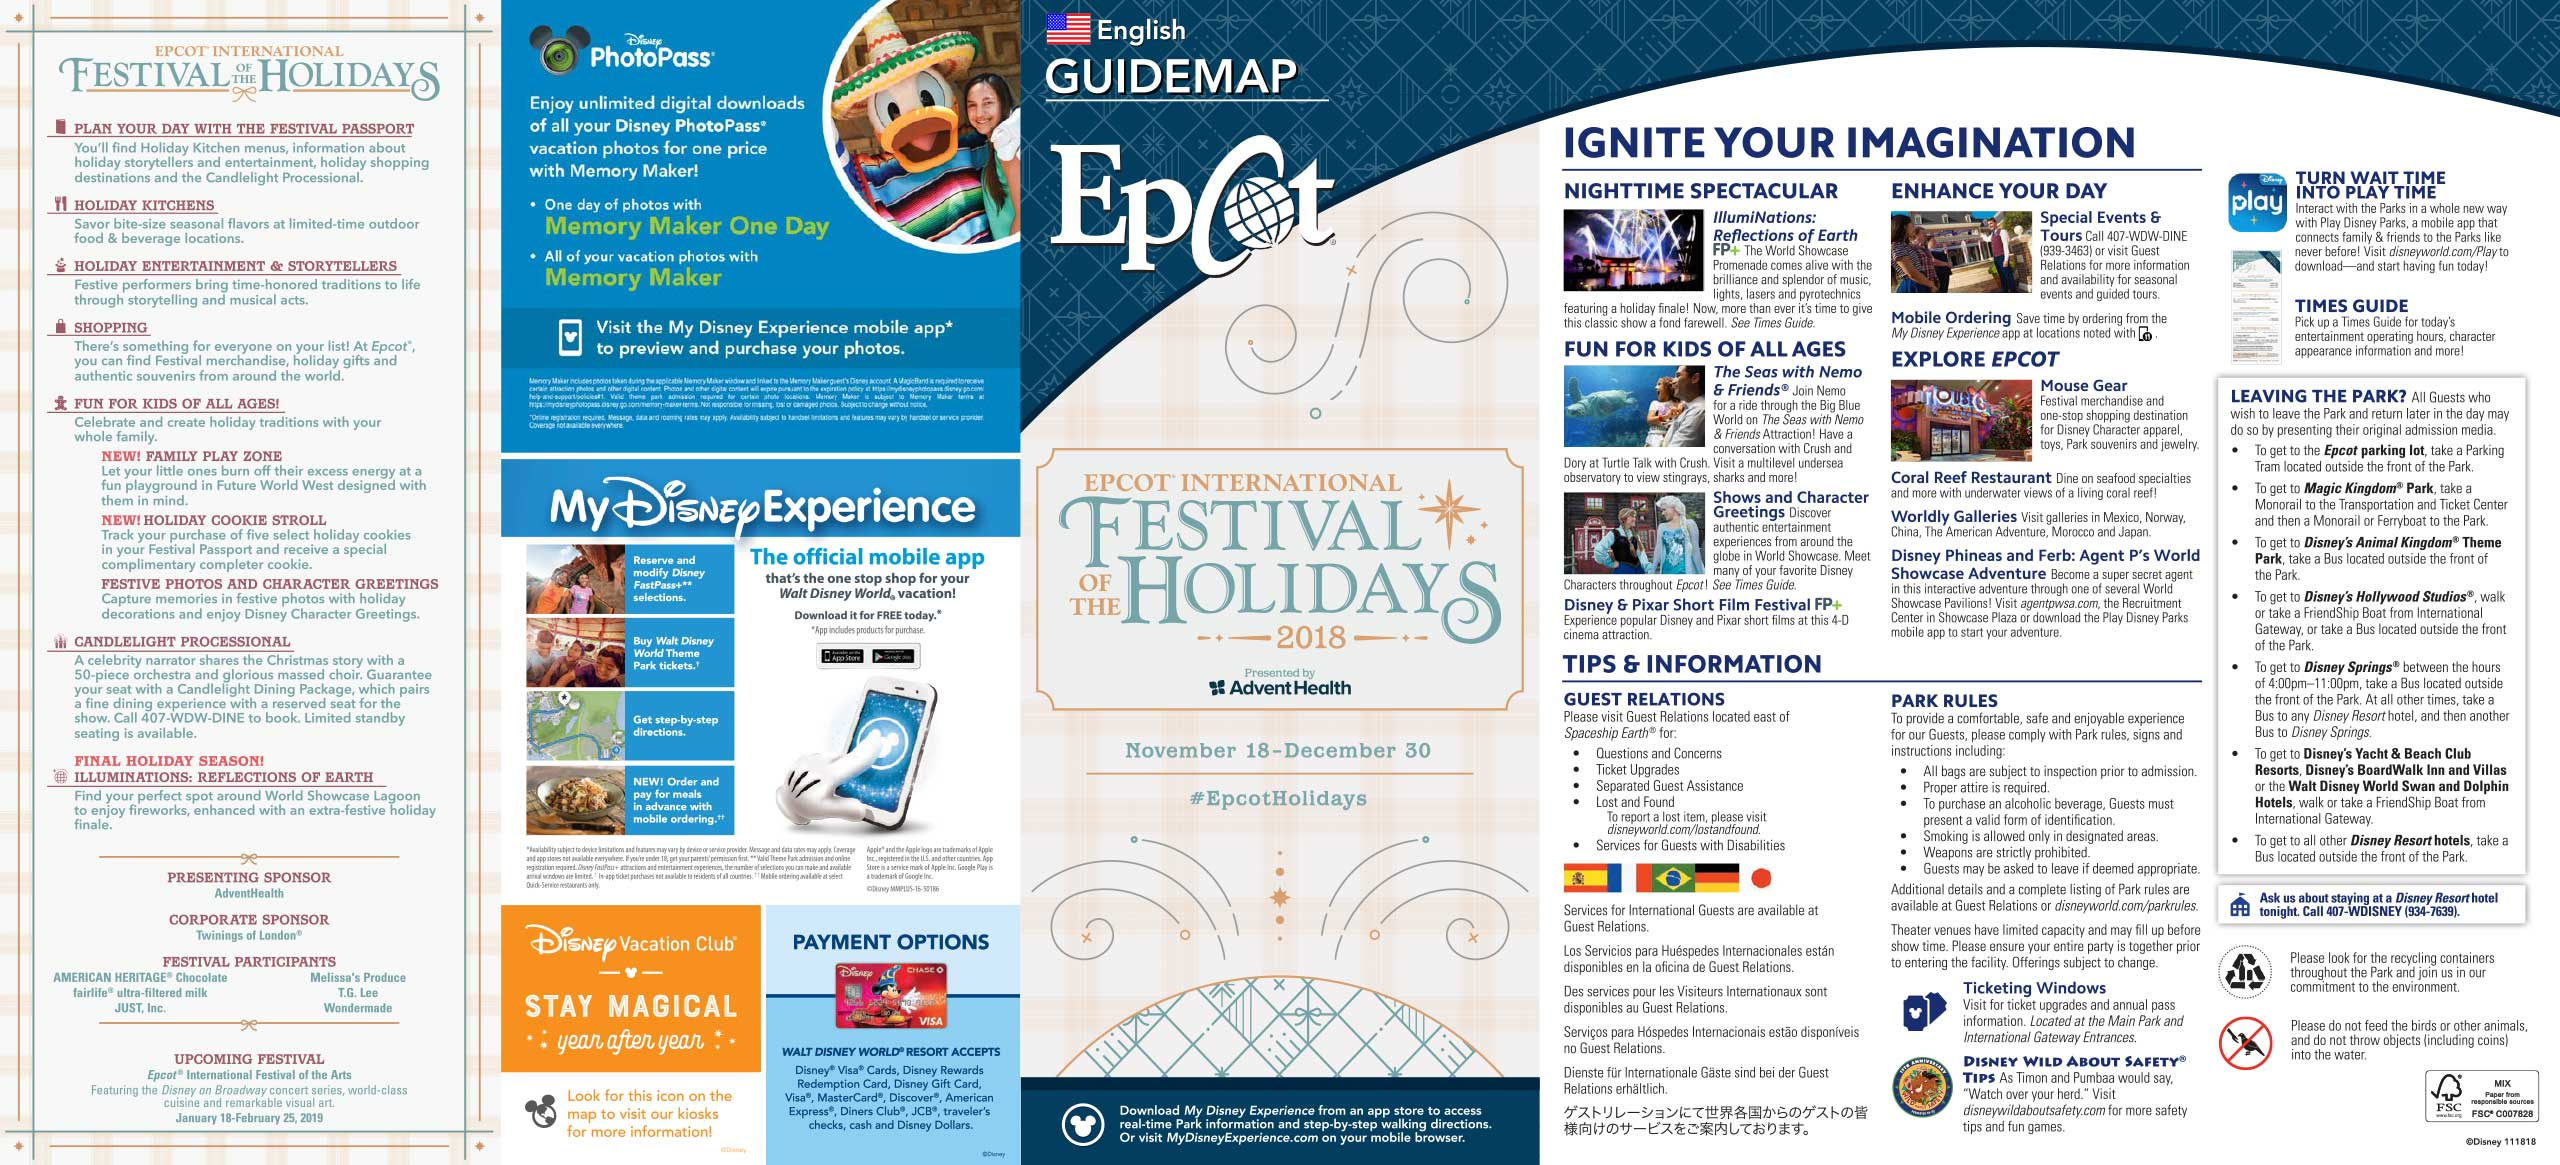 2018 Epcot Festival of the Holidays guide map - Front